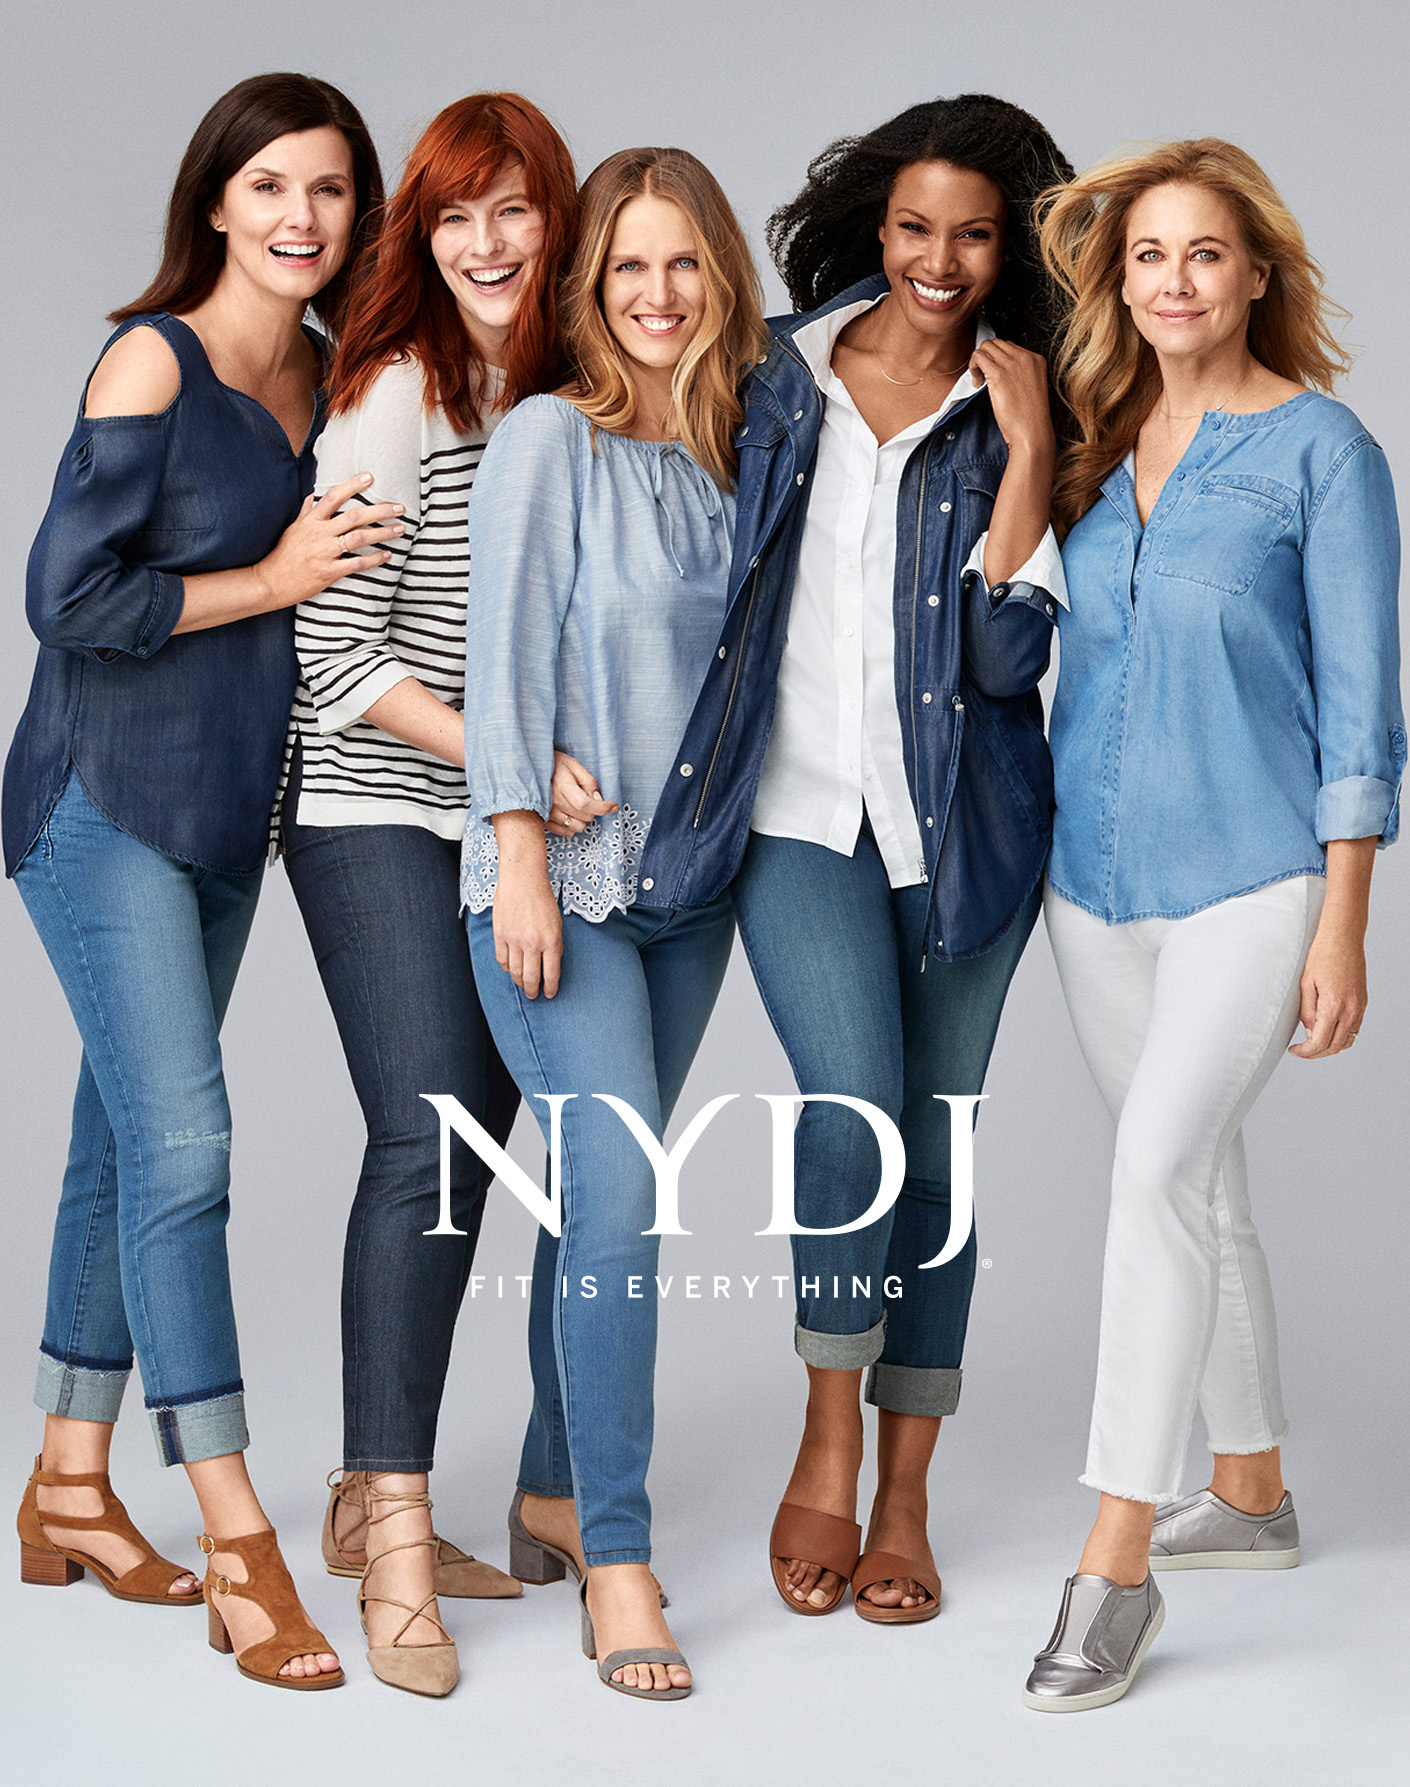 """NYDJ Spring 2017 """"Fit is Everything"""" Campaign (Photo: Business Wire)"""